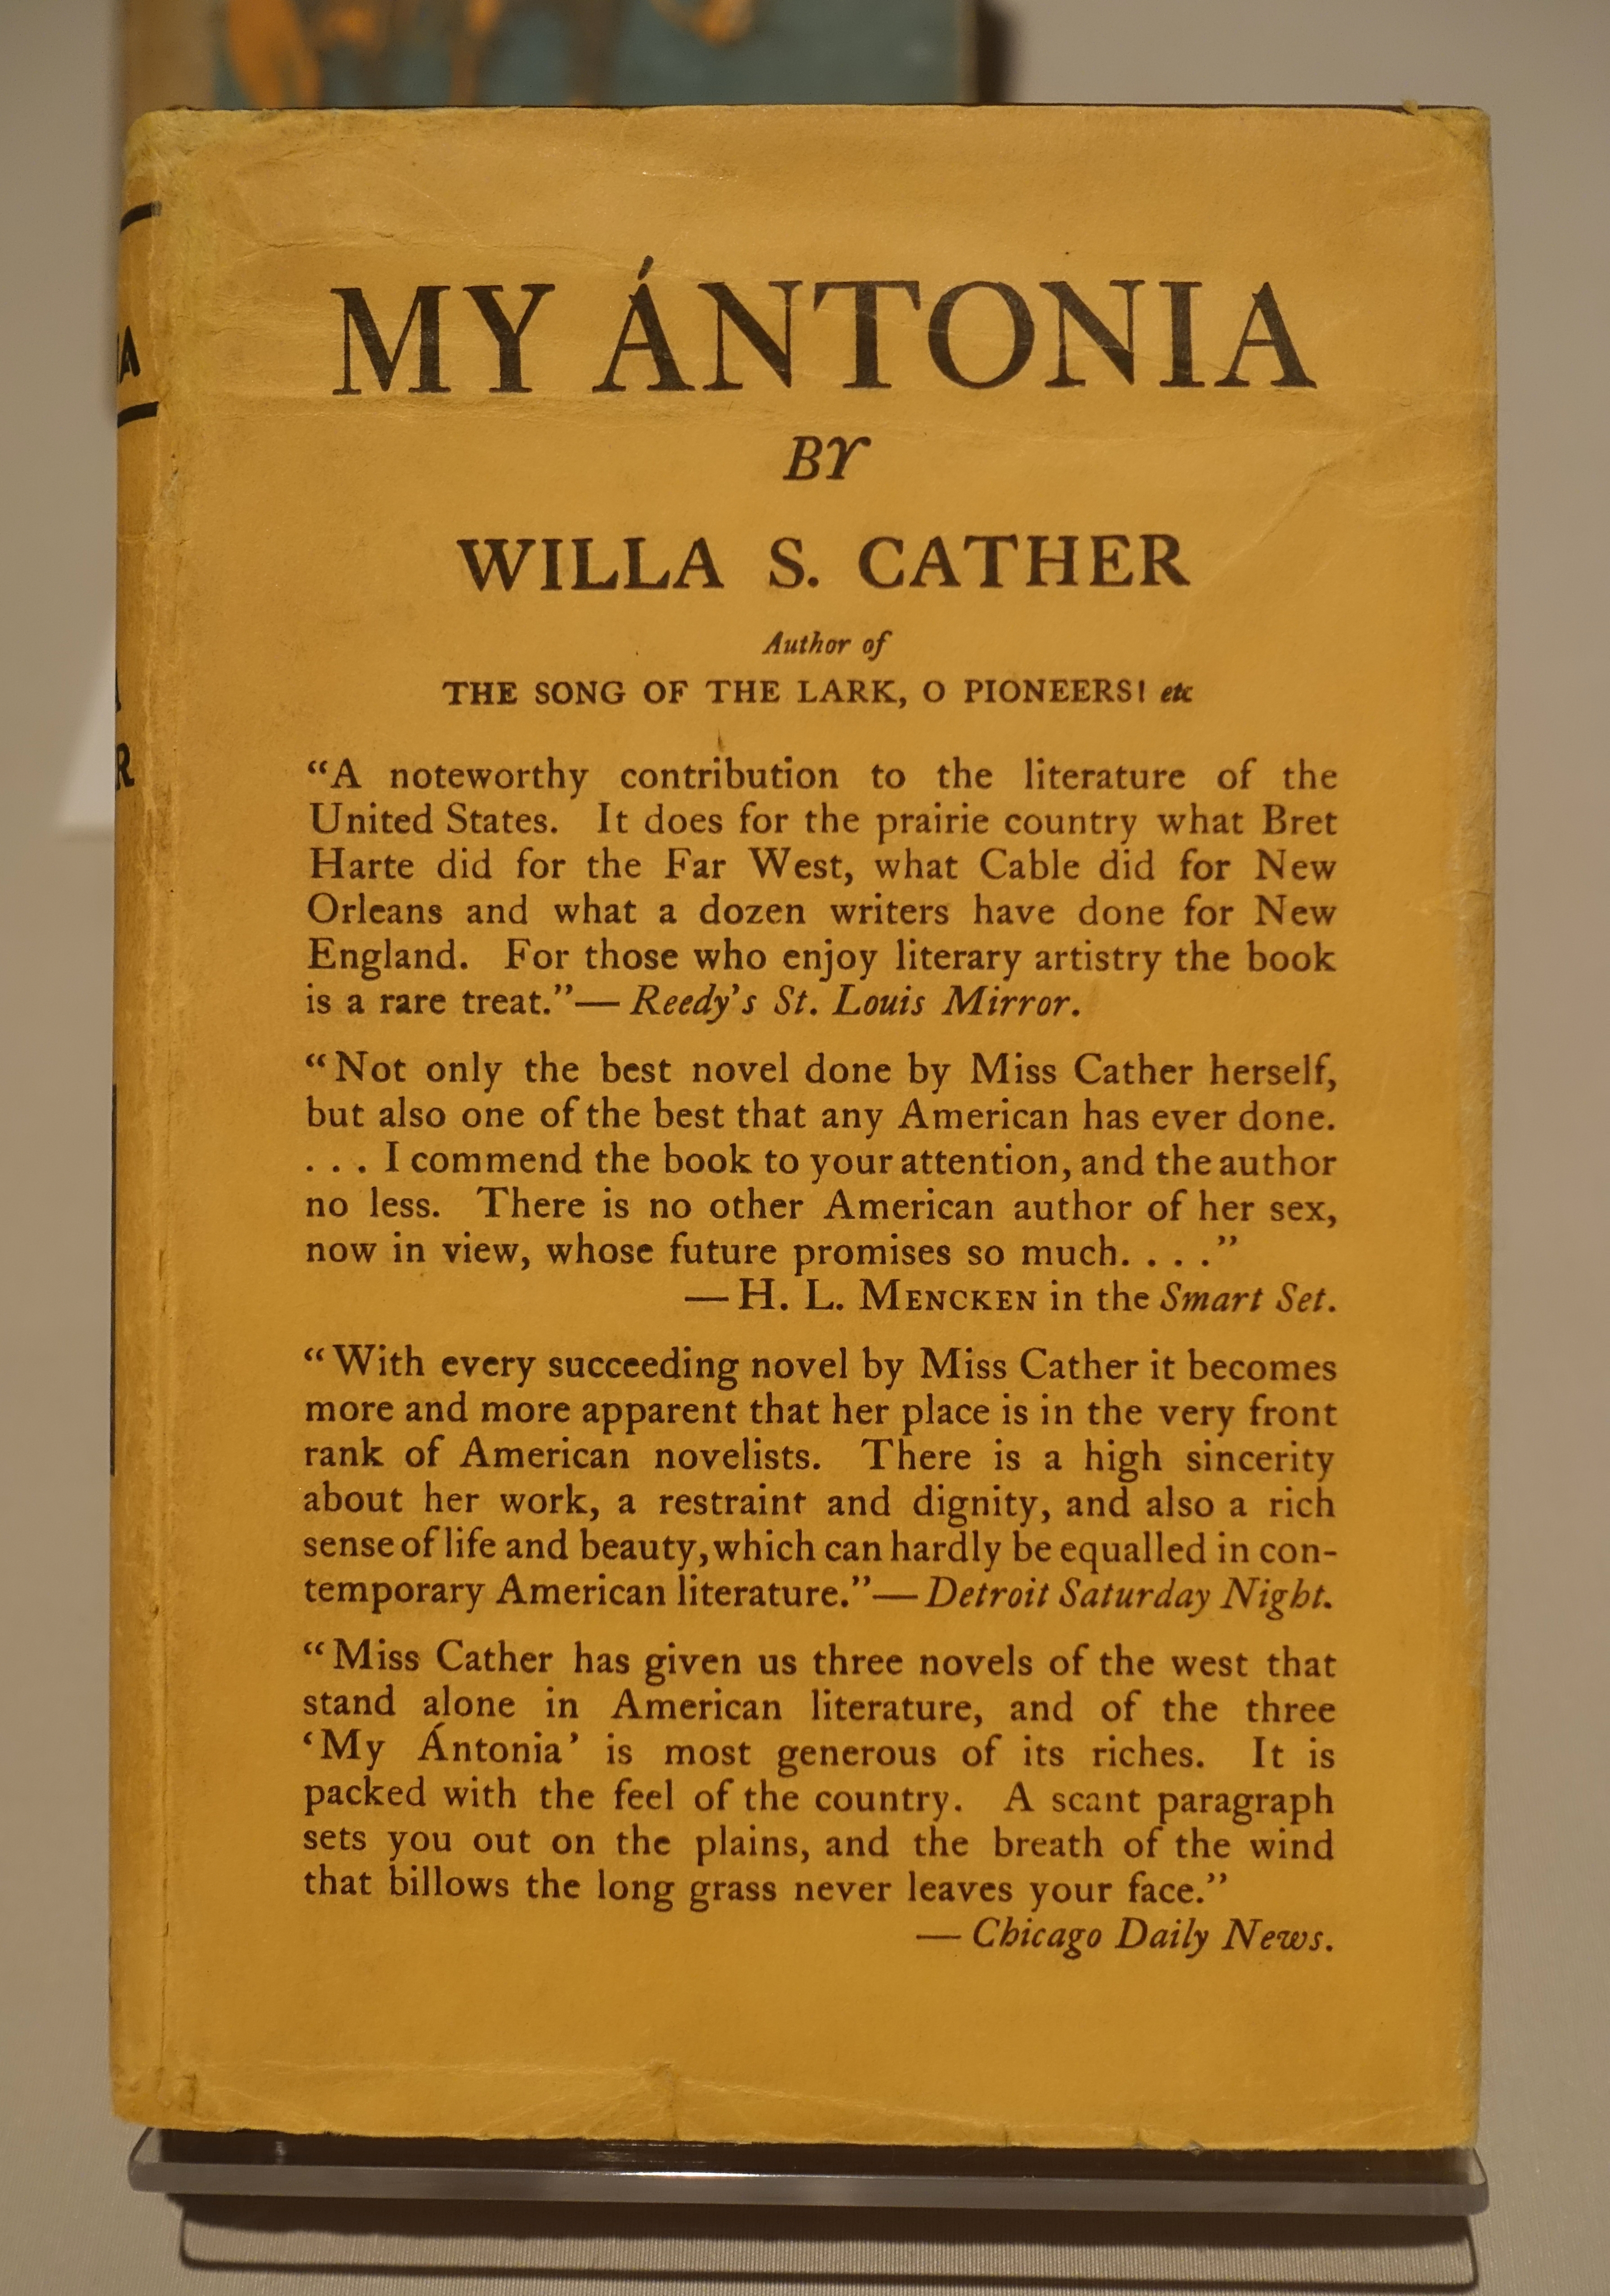 analysis of my antonia novel by willa cather Free online library: cather, willa - my antonia by willa cather book ii - best known authors and titles are available on the free online library.